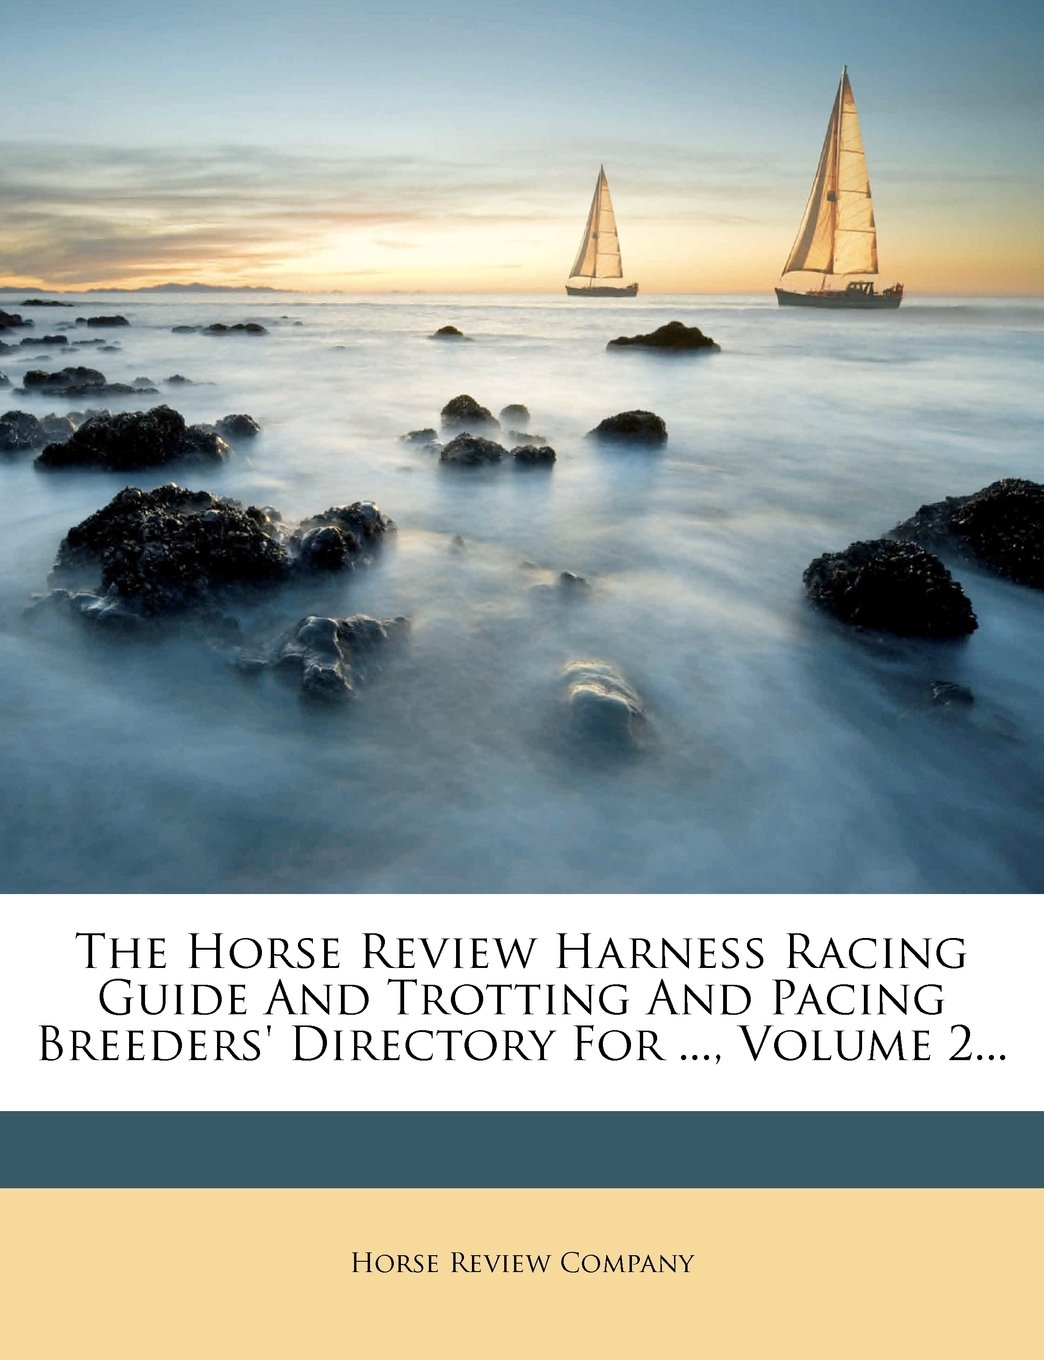 Read Online The Horse Review Harness Racing Guide And Trotting And Pacing Breeders' Directory For ..., Volume 2... pdf